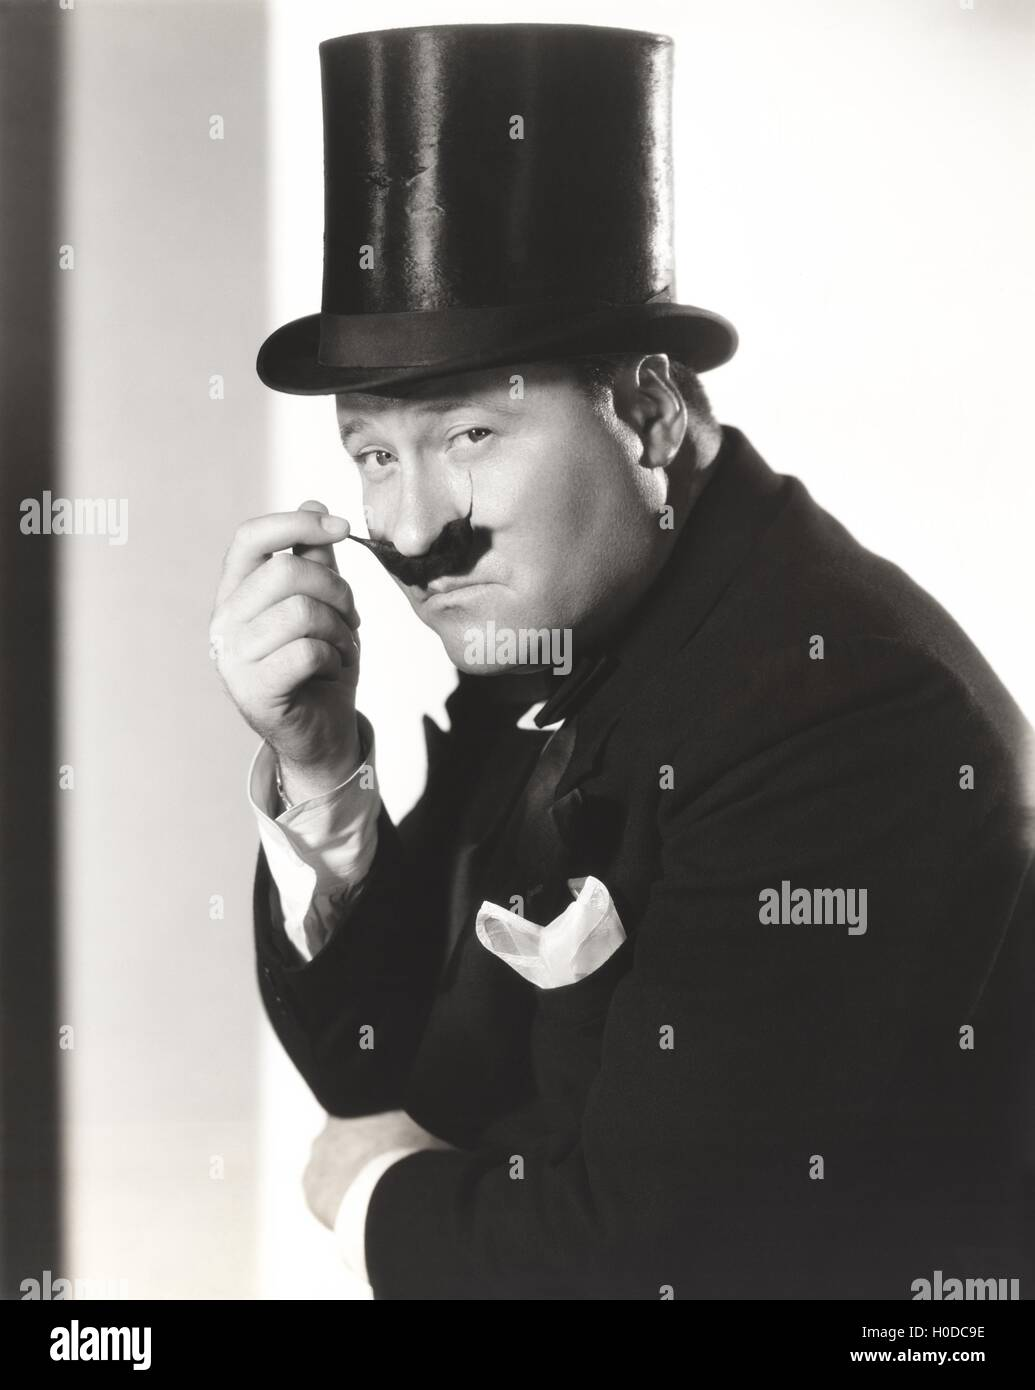 Man in top hat with waxed mustache - Stock Image